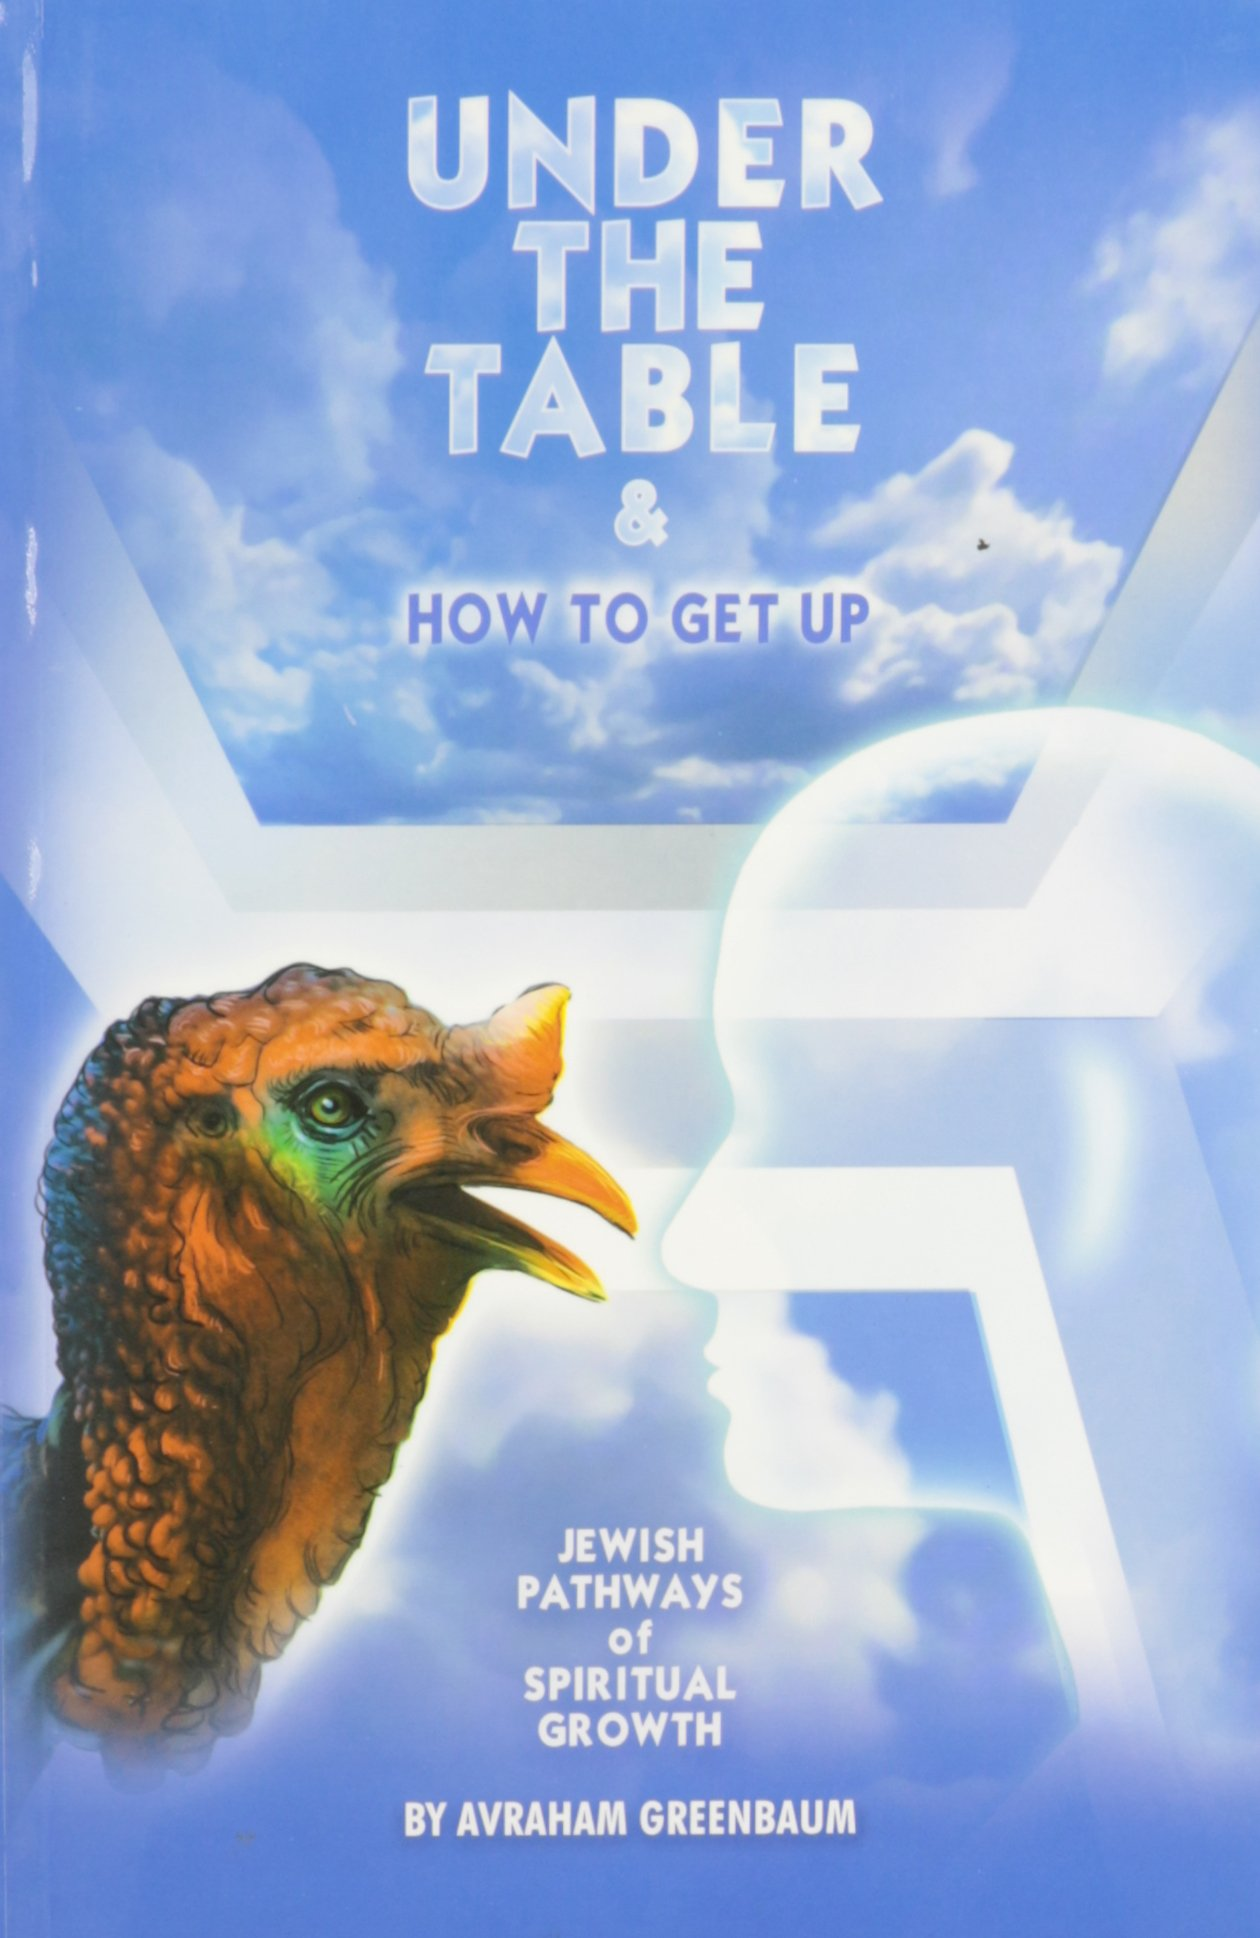 Under the Table & How to Get Up: Jewish Pathways of Spiritual Growth